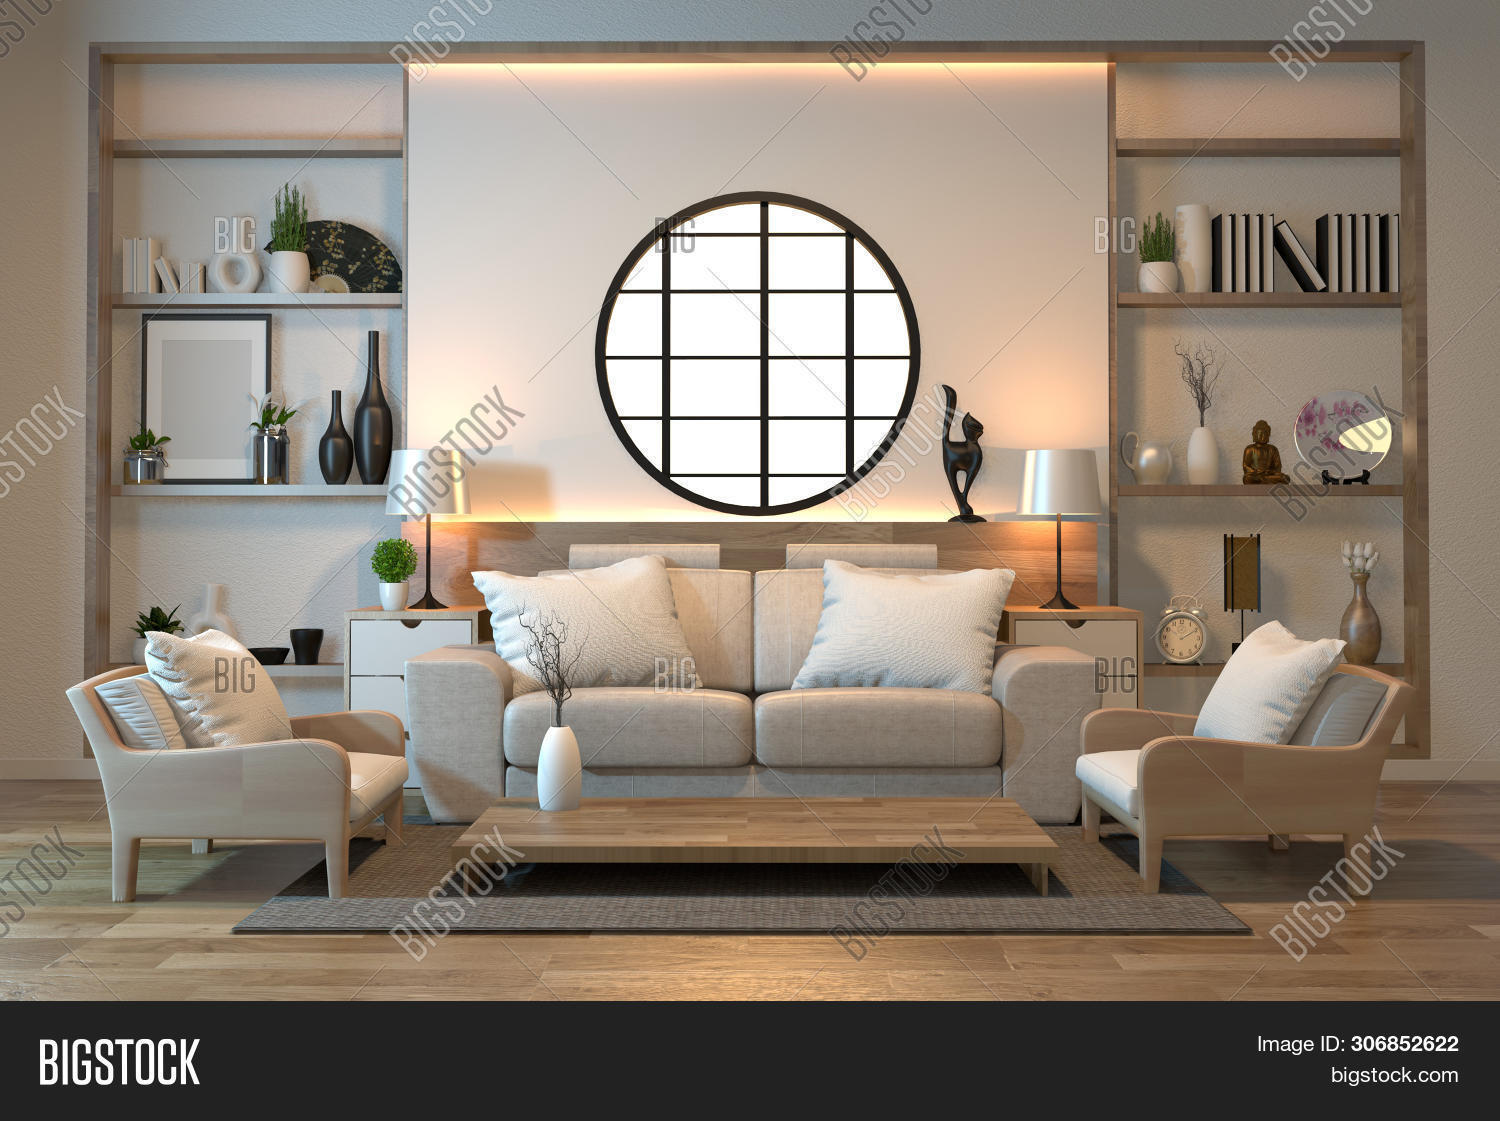 Minimal Interior Image Photo Free Trial Bigstock